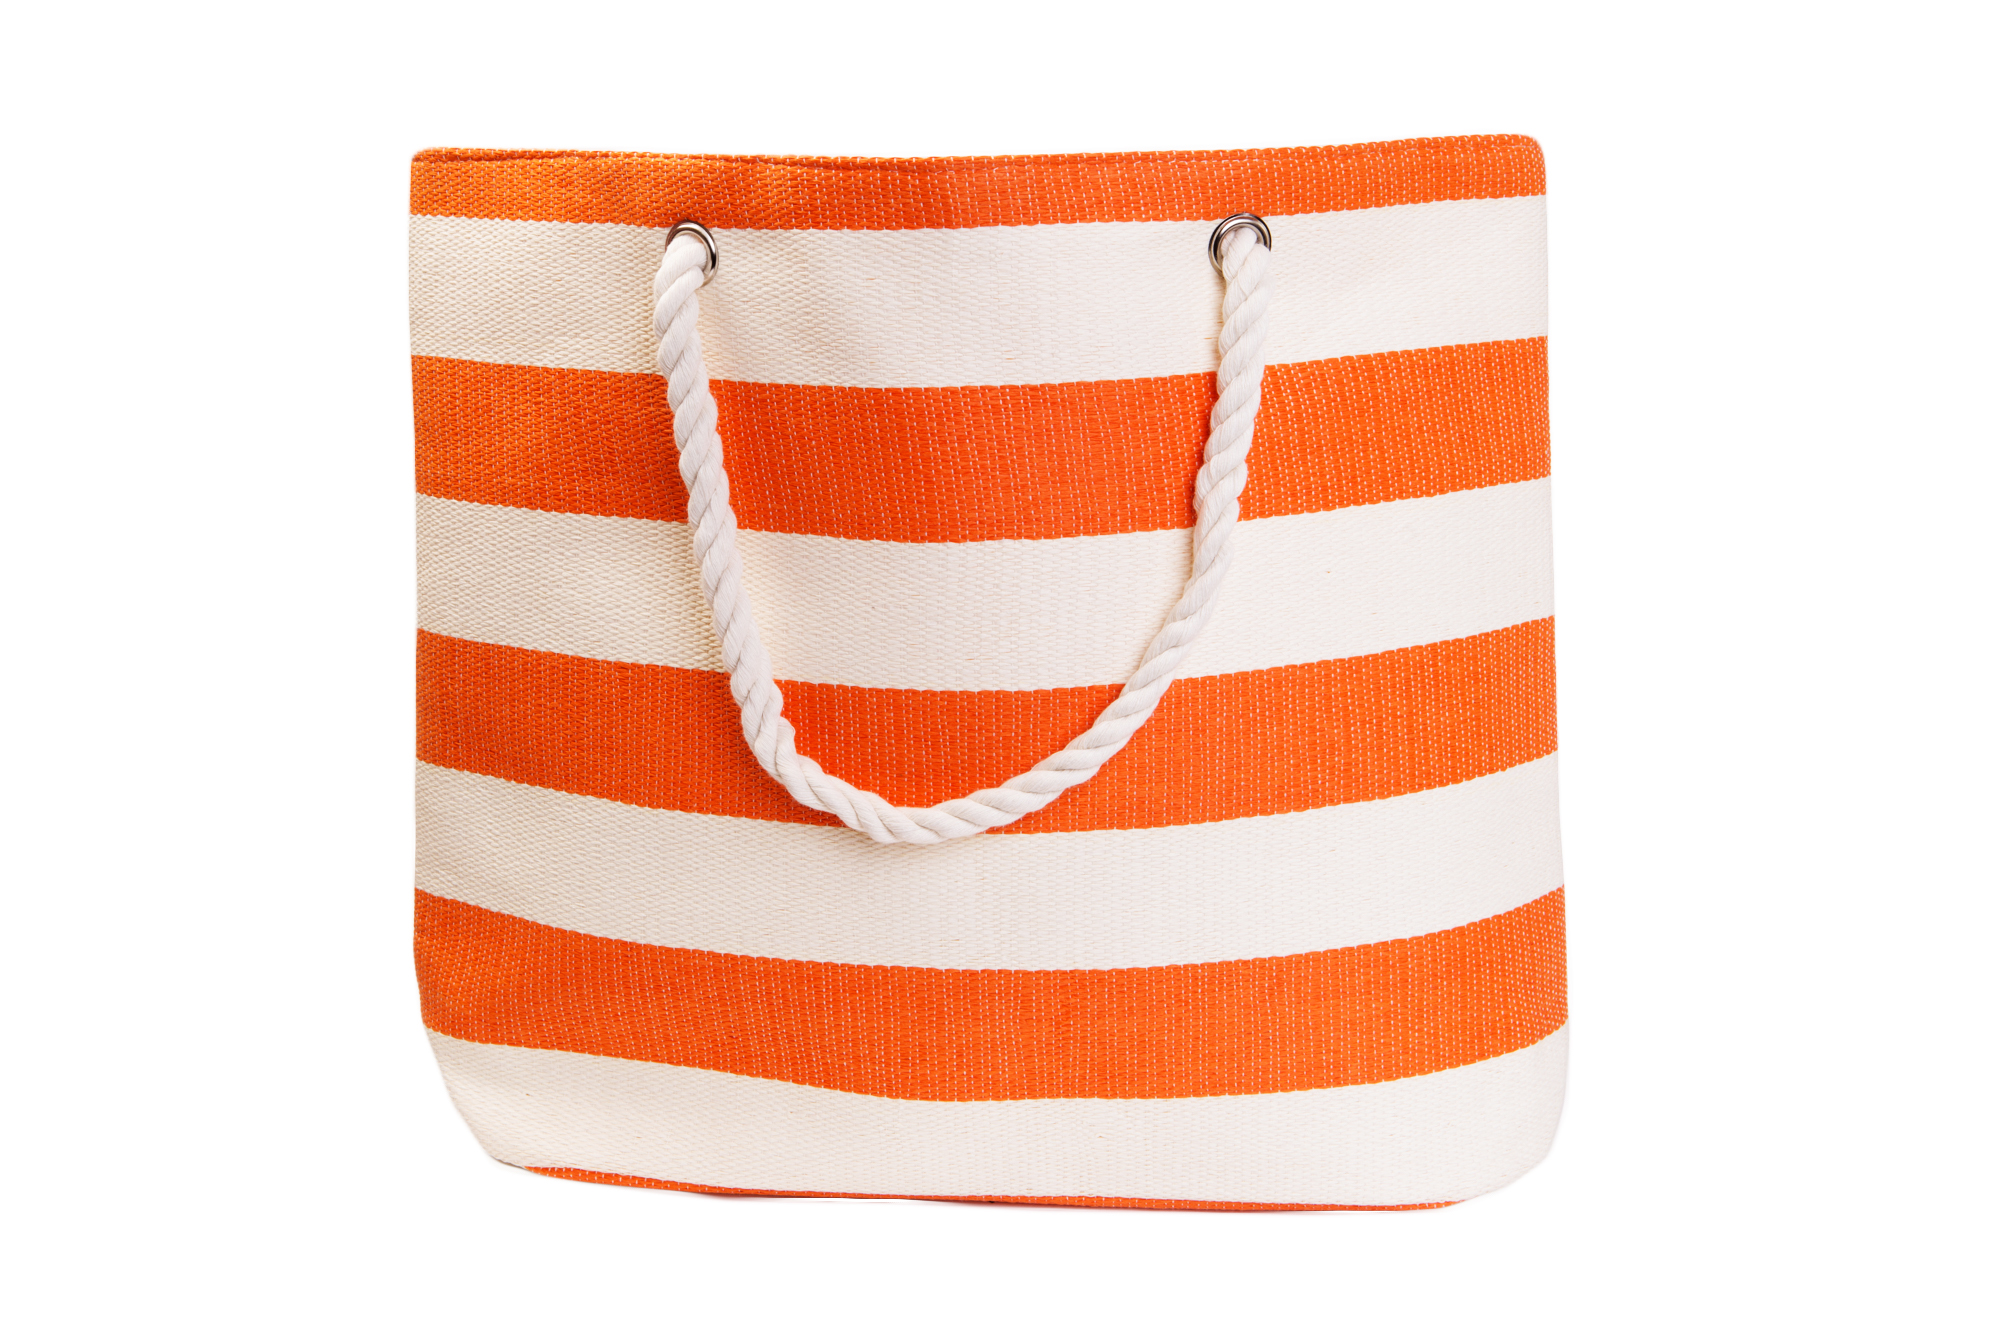 Straw Beach Bags W/ Pocket - Orange Stripes